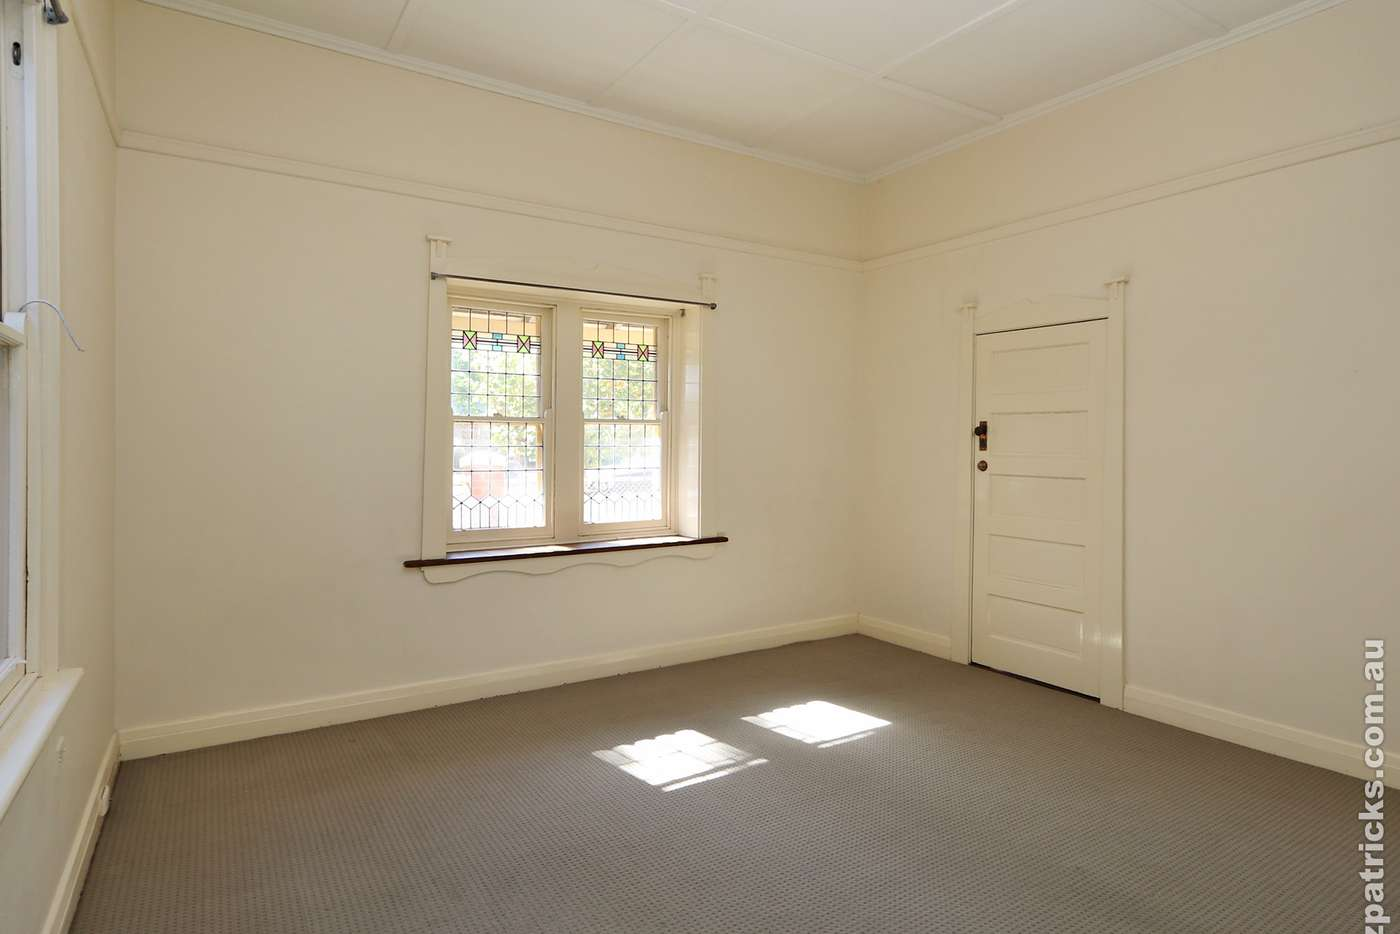 Seventh view of Homely house listing, 60 Peter Street, Wagga Wagga NSW 2650